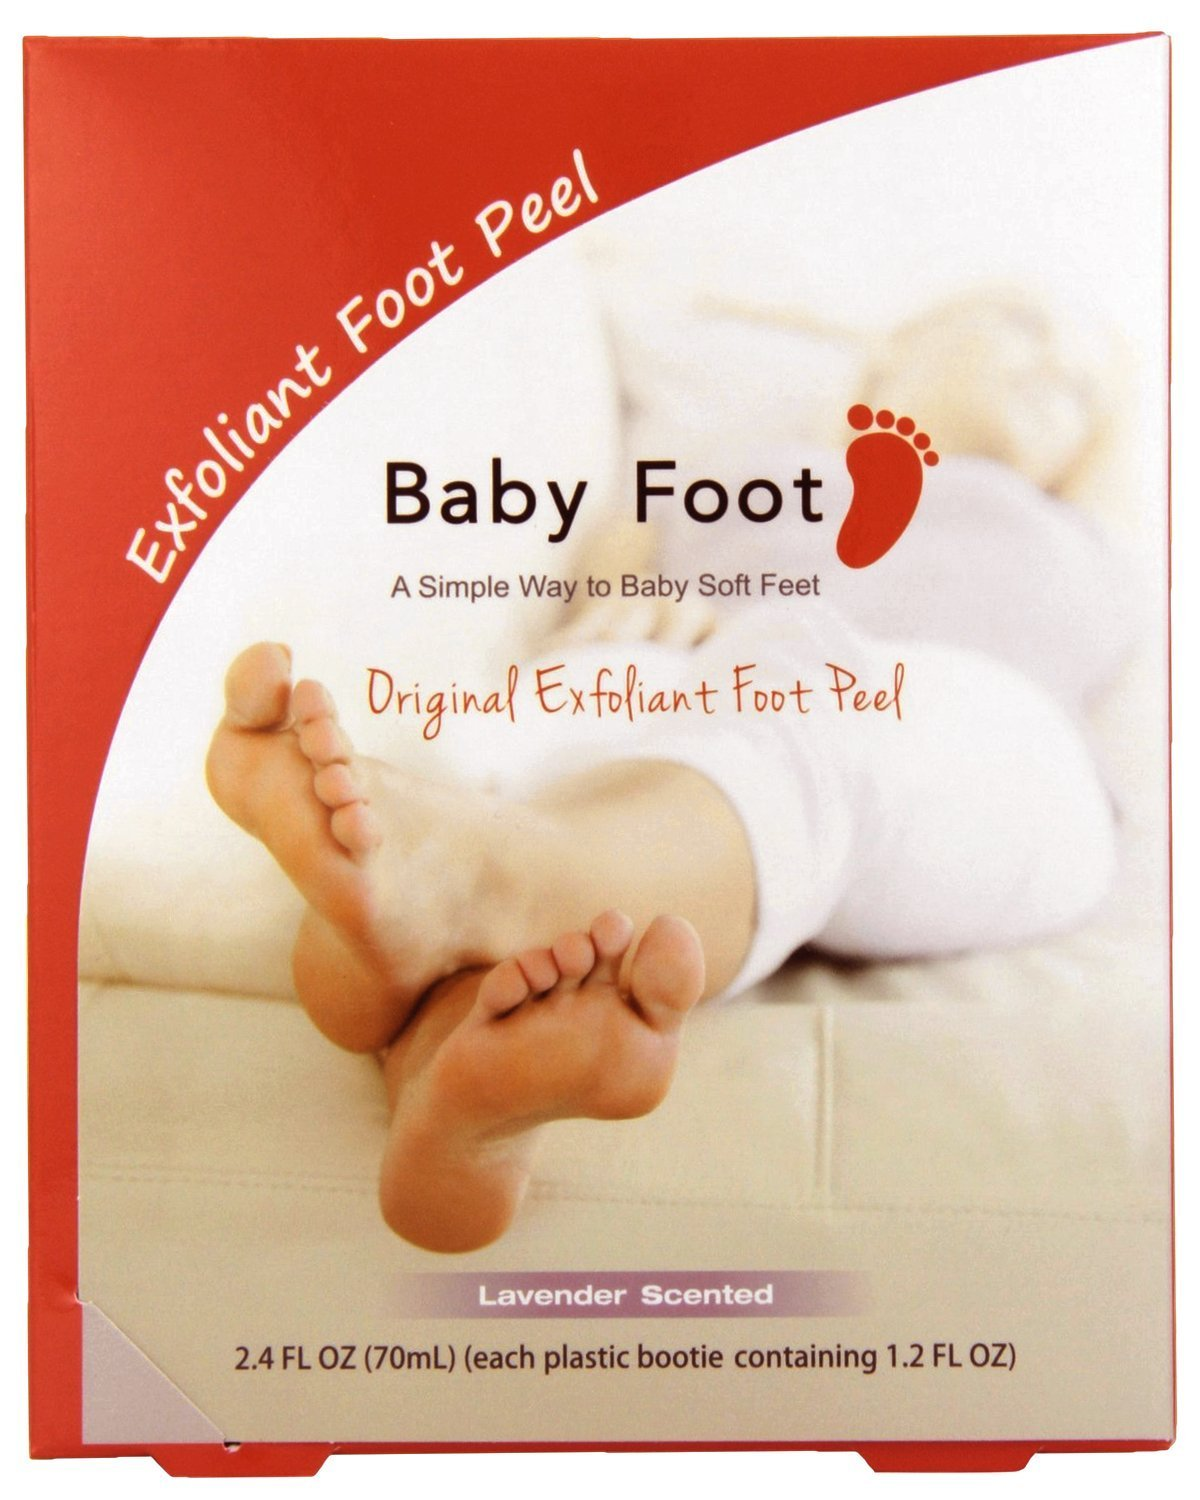 Baby Foot Original Exfoliating